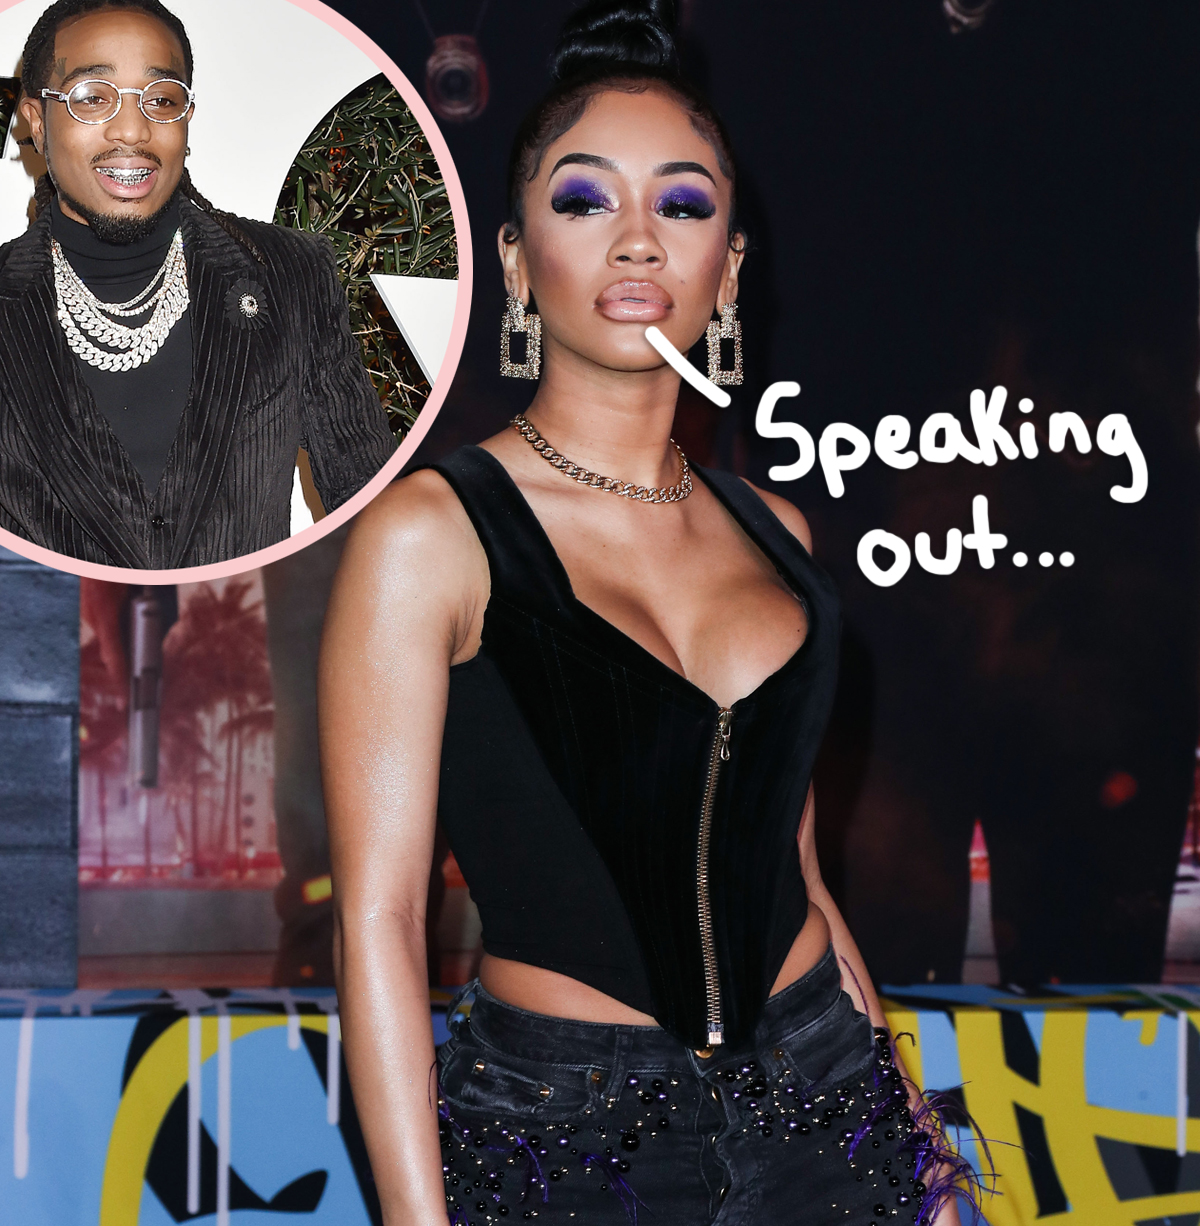 Saweetie Breaks Her Silence On Elevator Fight Video With Quavo